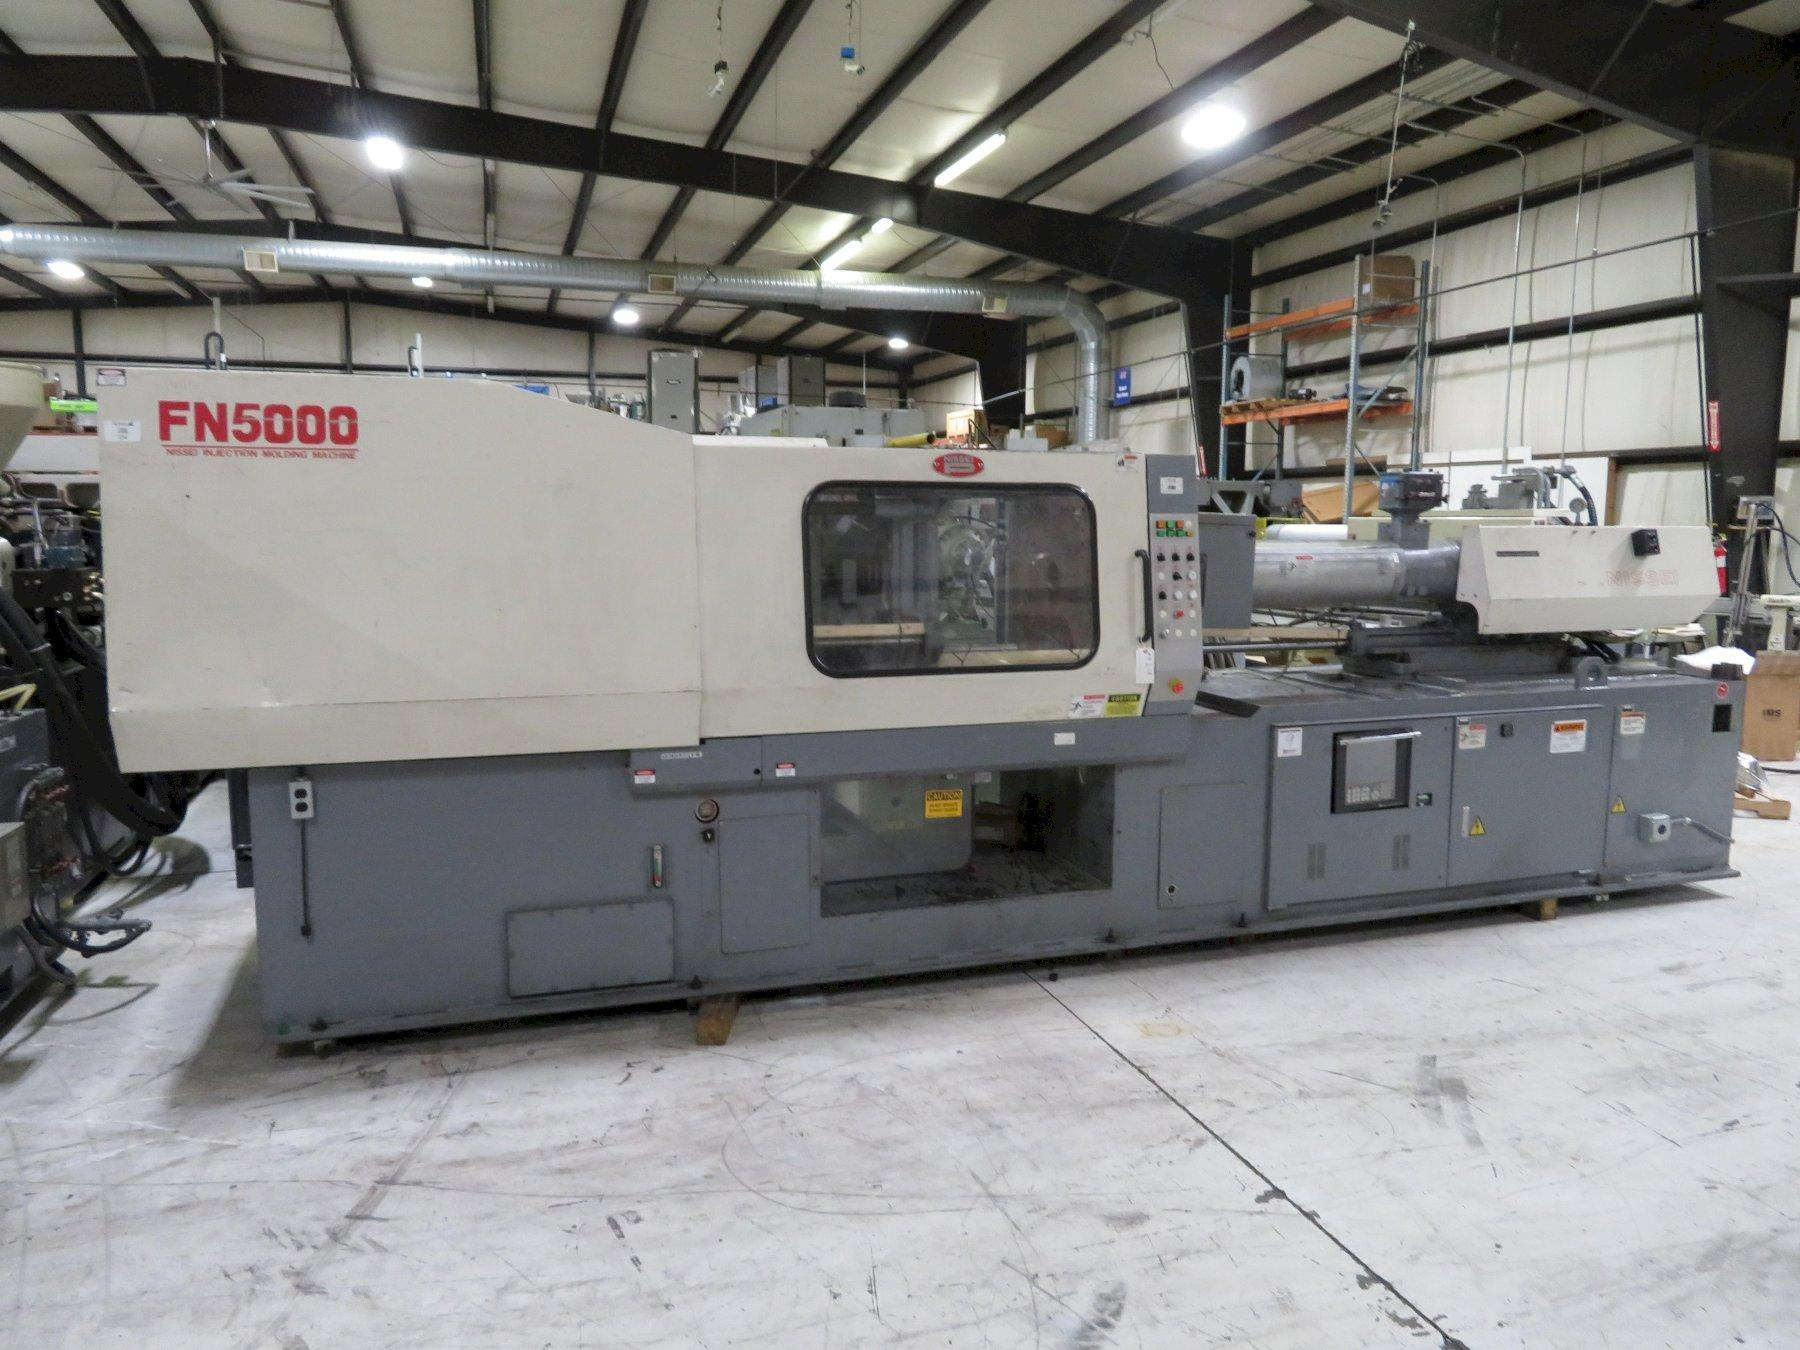 Nissei Used FN5000 Injection Molding Machine, 240 US ton, Yr. 2000, 21.4 oz.